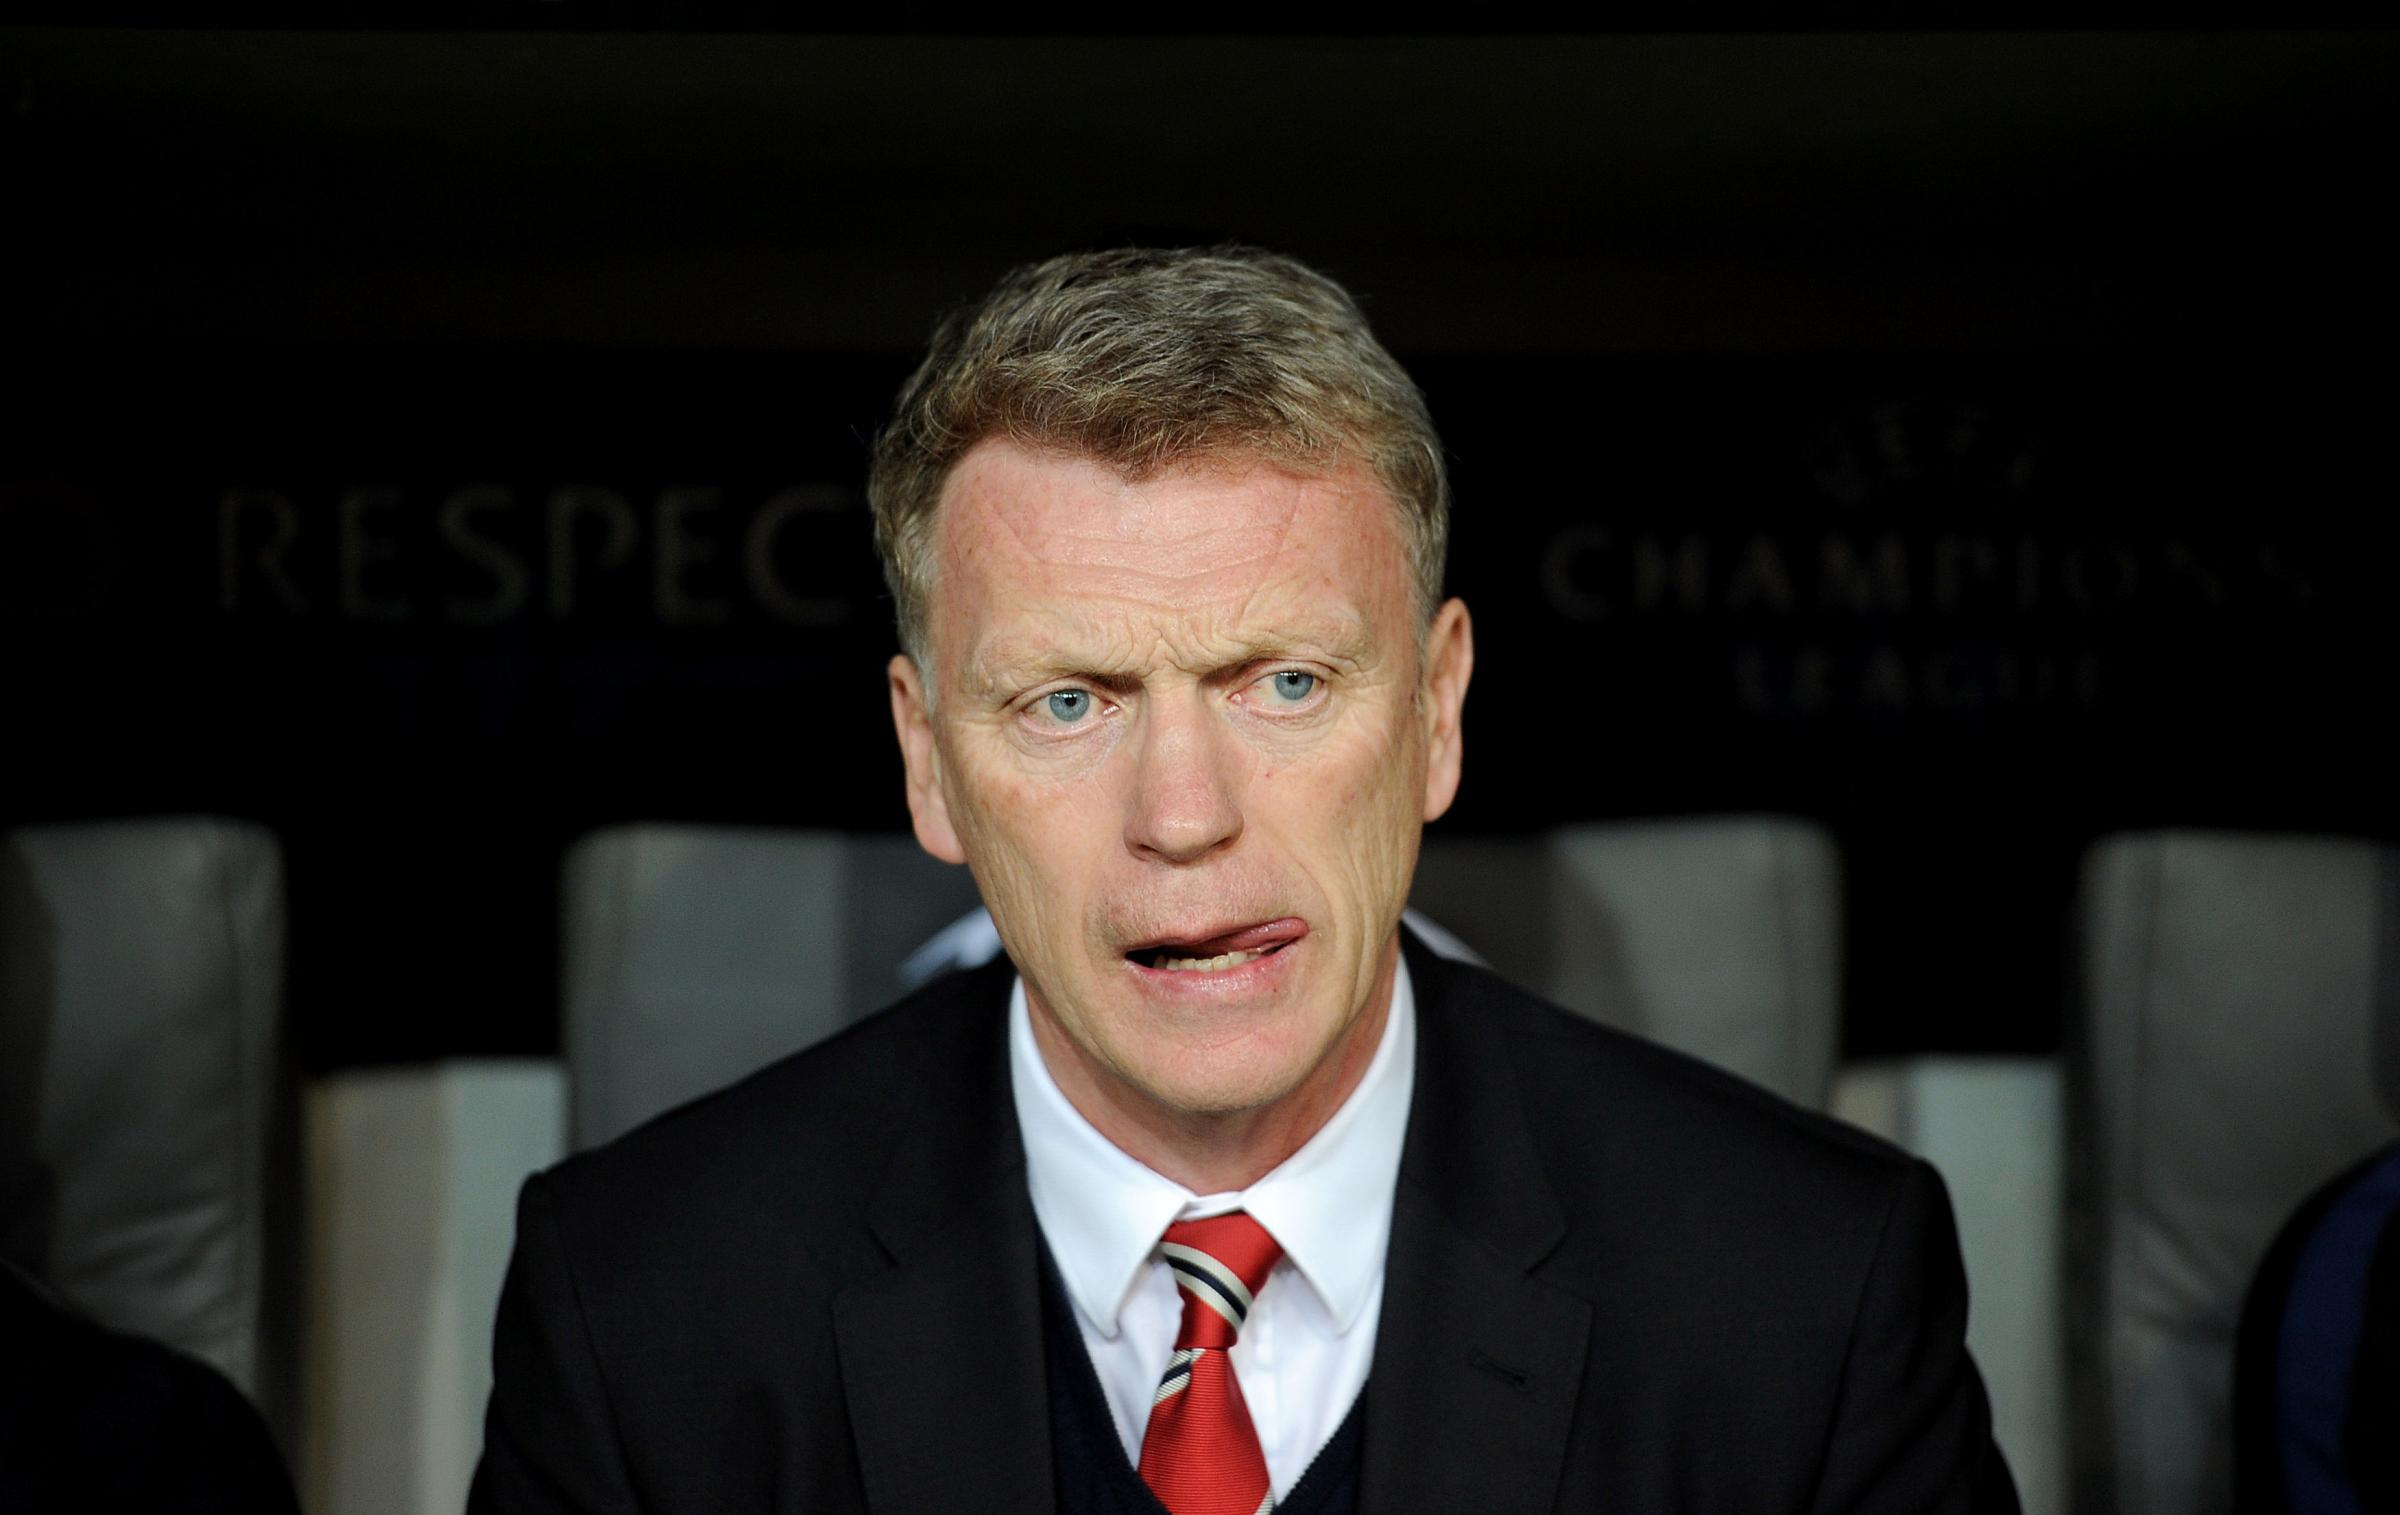 DAVID MOYES: Did not appear to be respected by United players